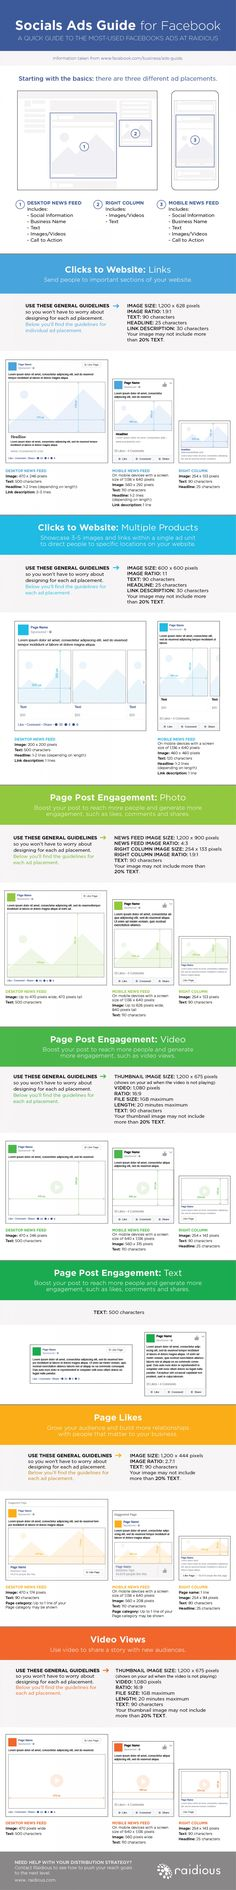 Handy tool for designing Facebook ads!   Social Ads Guide for Facebook Infographic